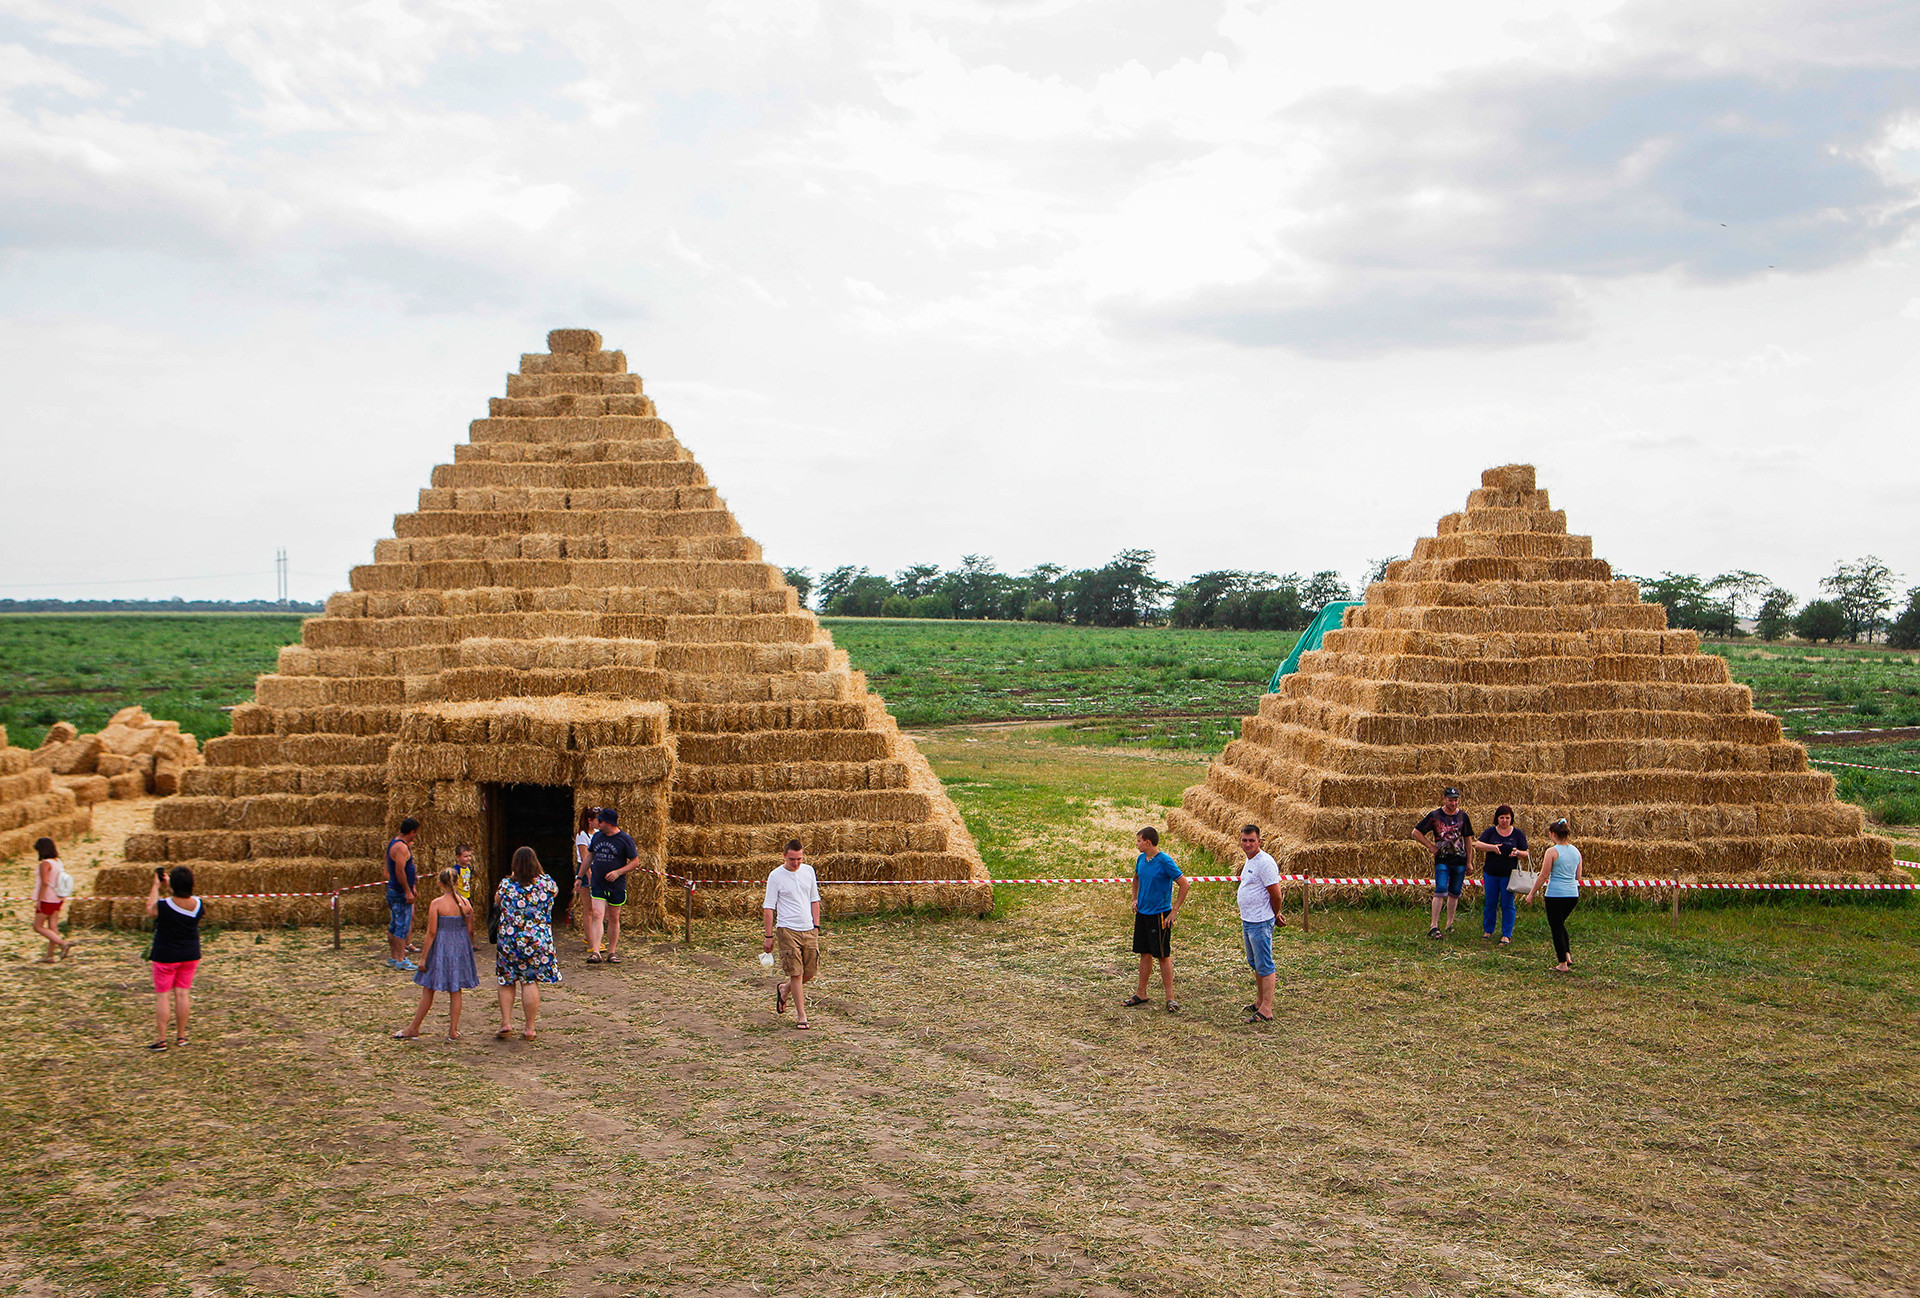 Egyptian pyramids out of hay